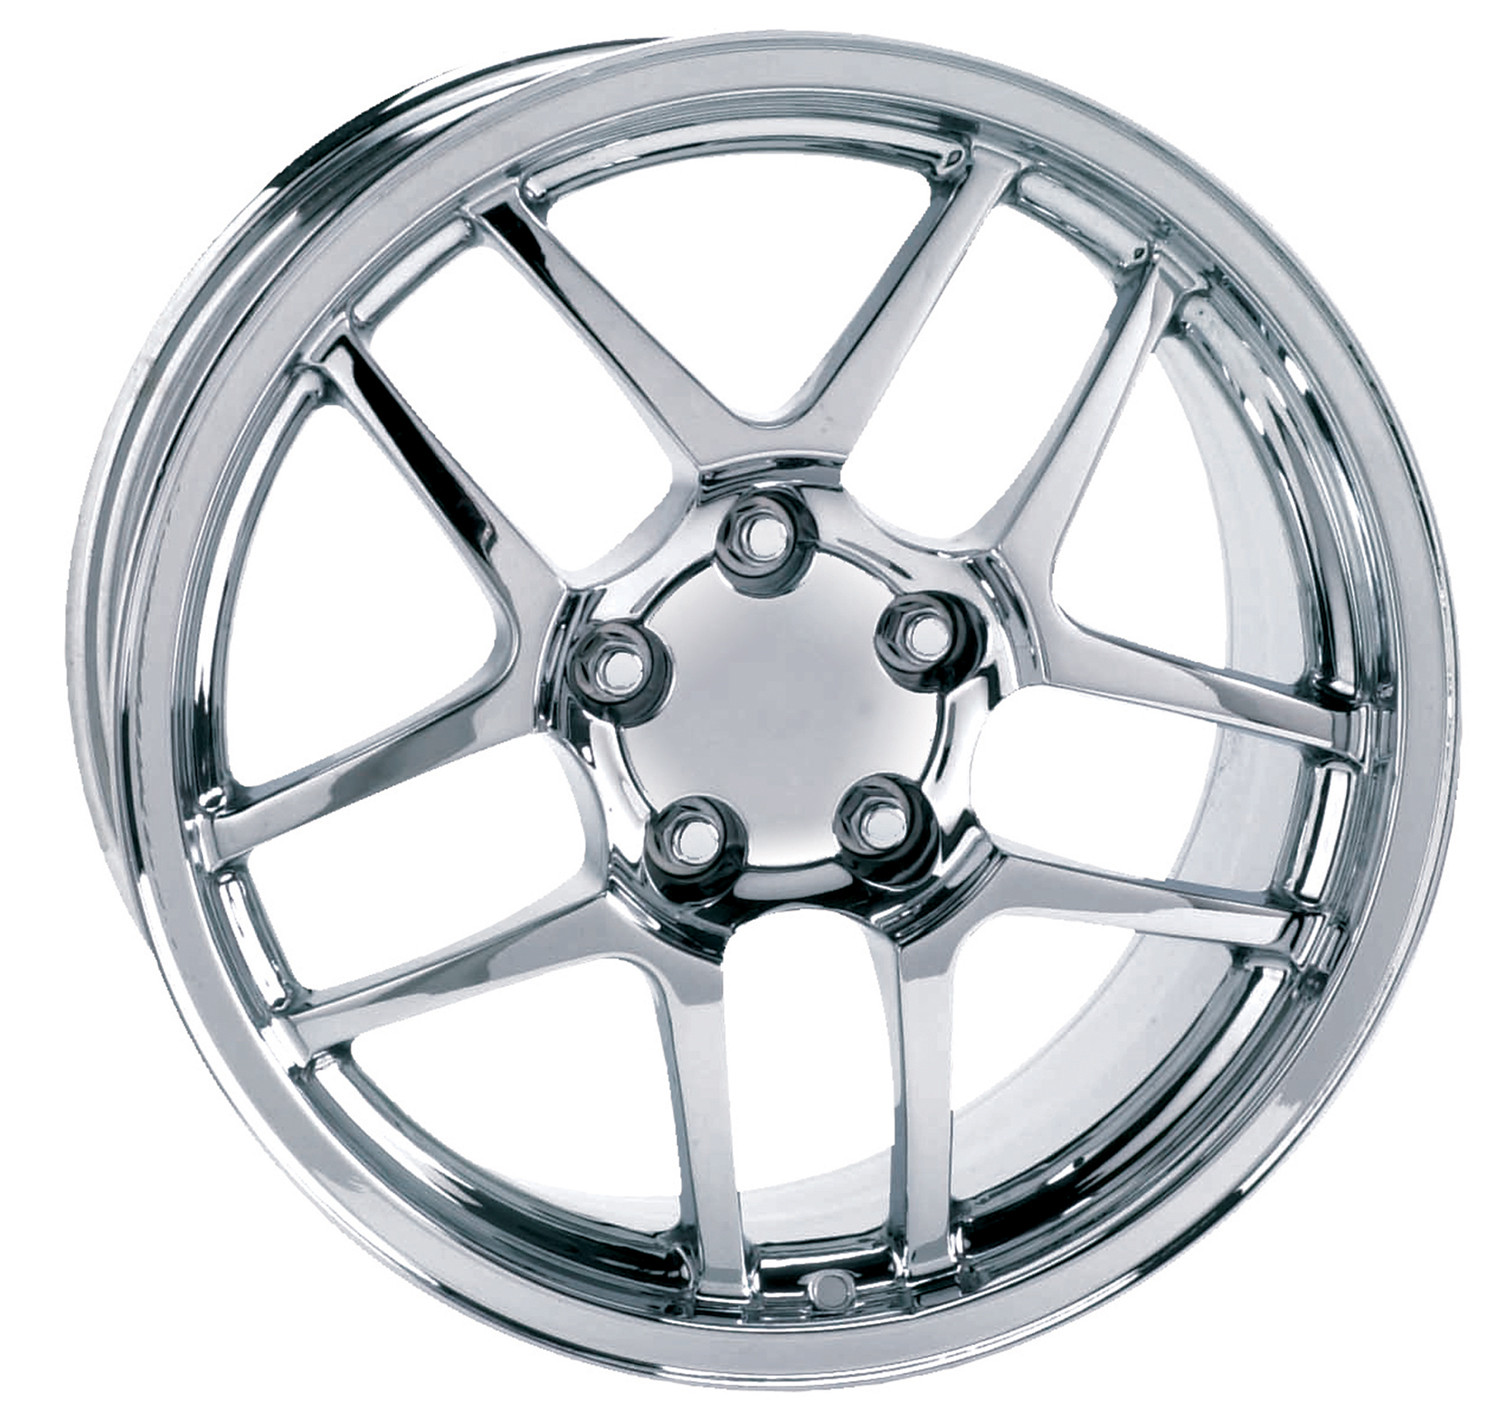 Chevrolet Corvette 1997-2004 18x10.5 5x4.75 +58 -C5 Z06 Style Wheel - Chrome With Cap